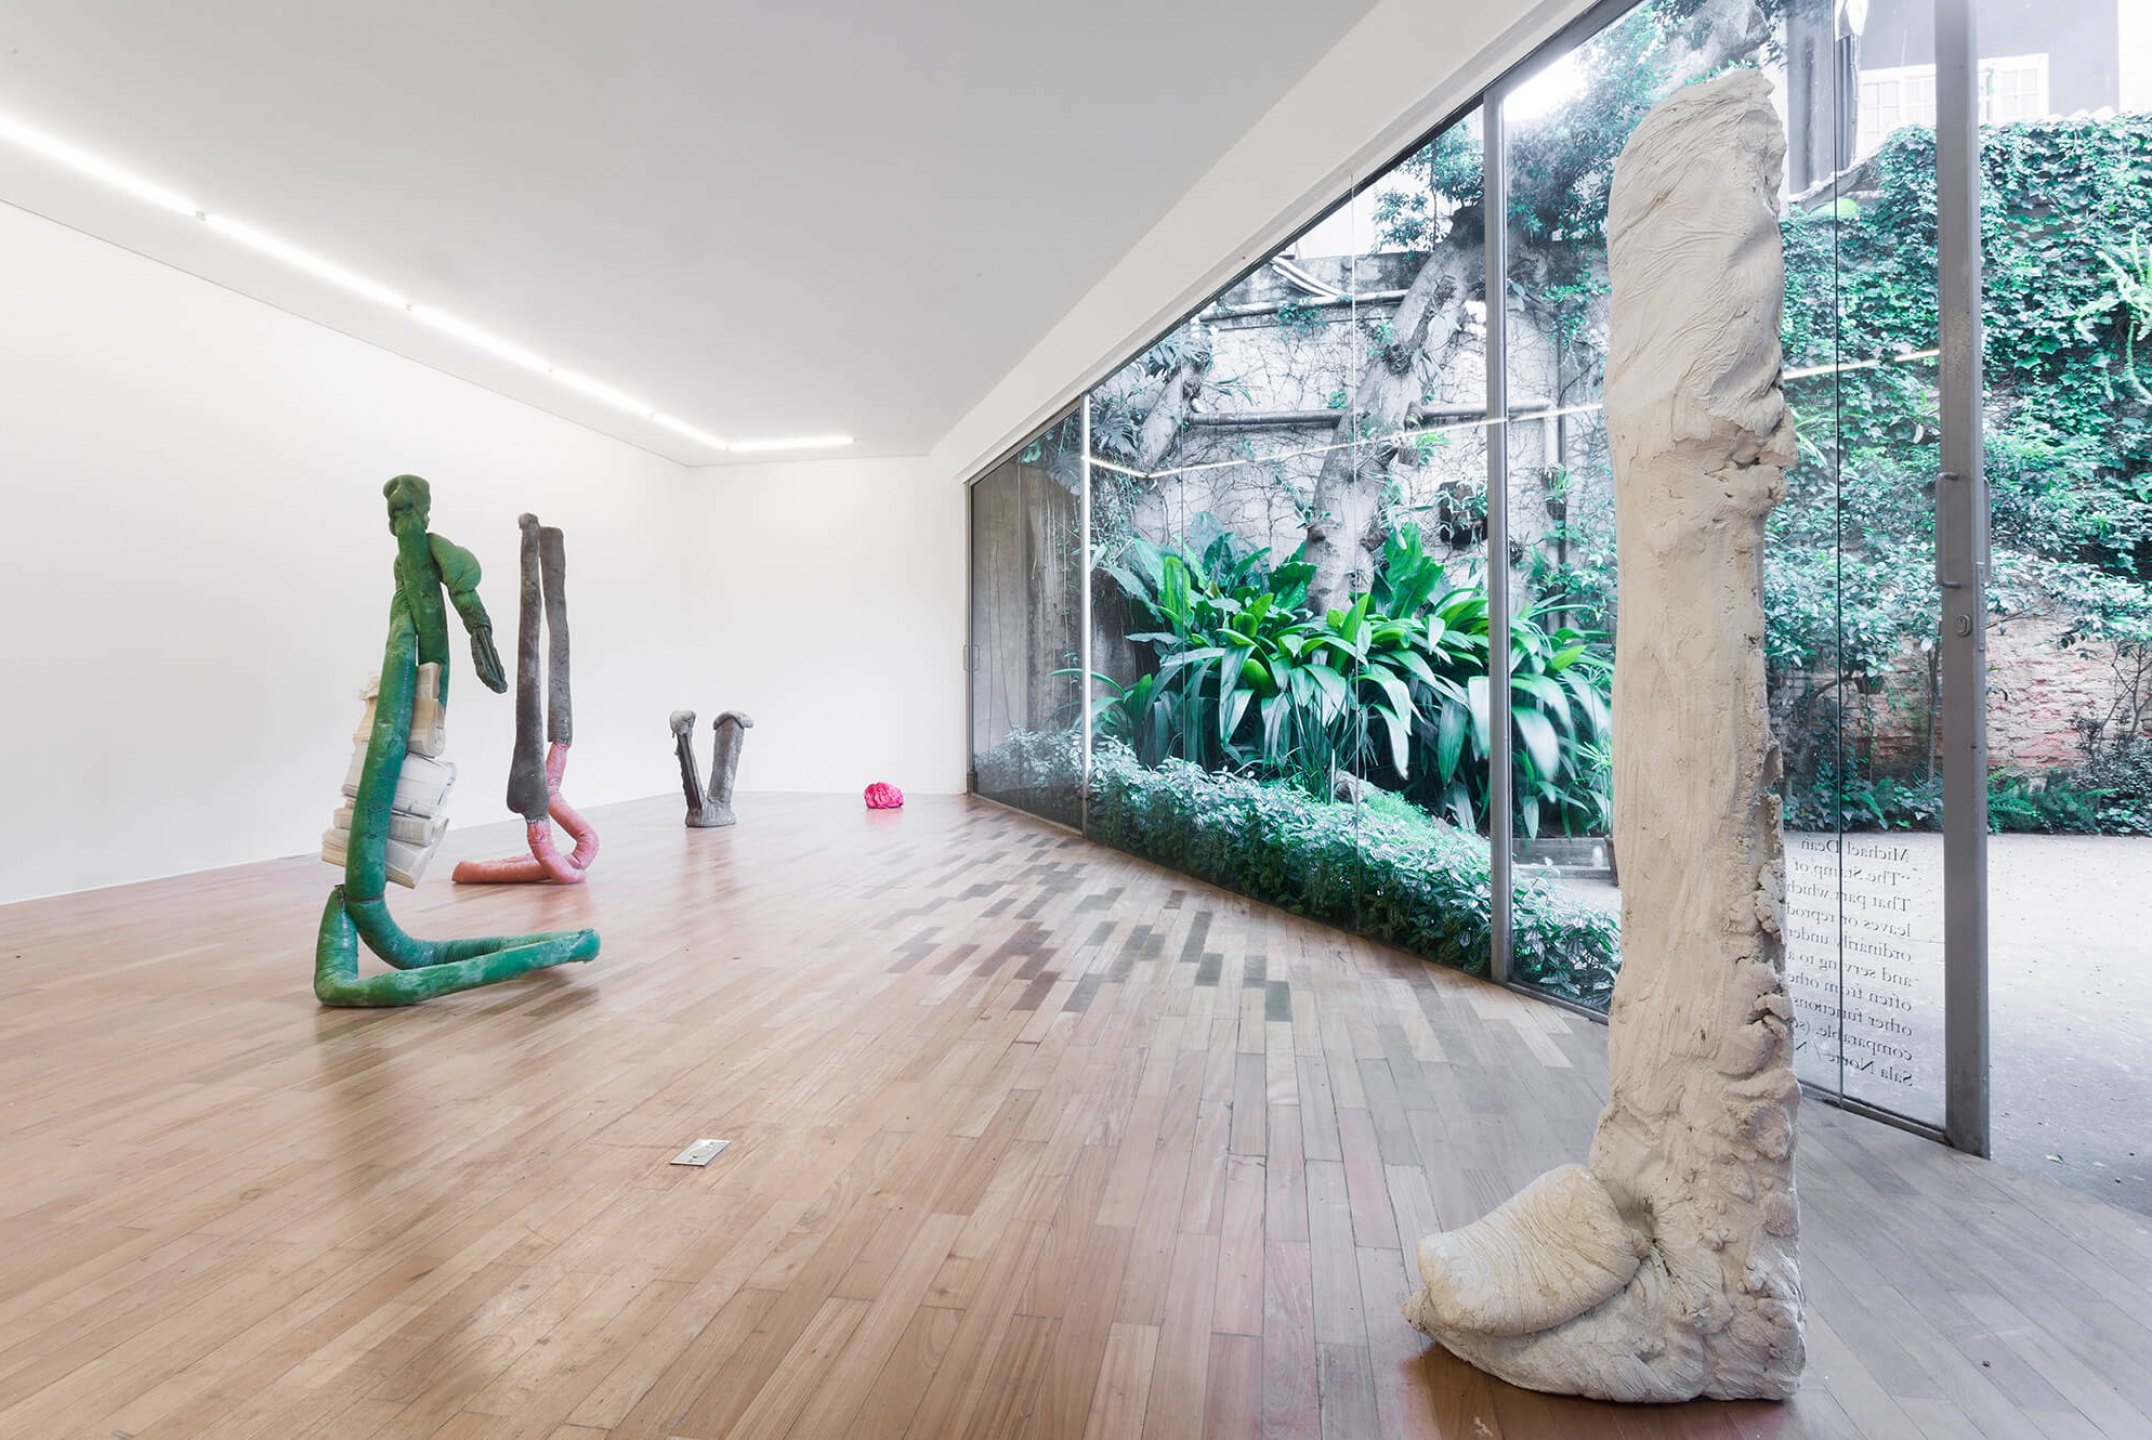 Michael Dean,<em>The Stamp of anything or that part which never bears leaves or reproductive organs, ordinary underneath and descending, and to absorb, but often upon, often from other parts, often serving other functions, though morphologically comparable, </em>Mendes Wood DM, São Paulo, 2015 - Mendes Wood DM